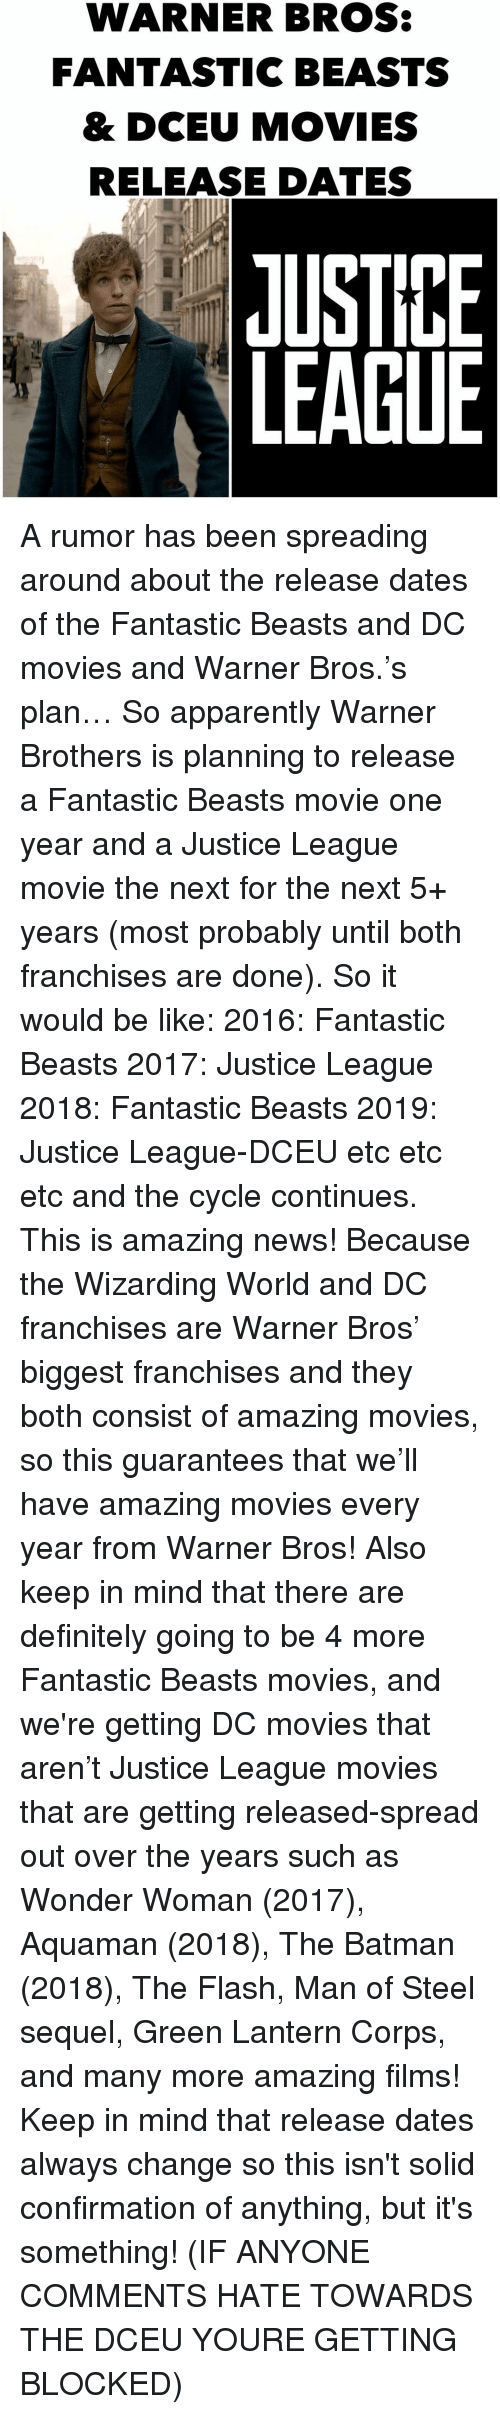 Fantastic beasts release date in Perth